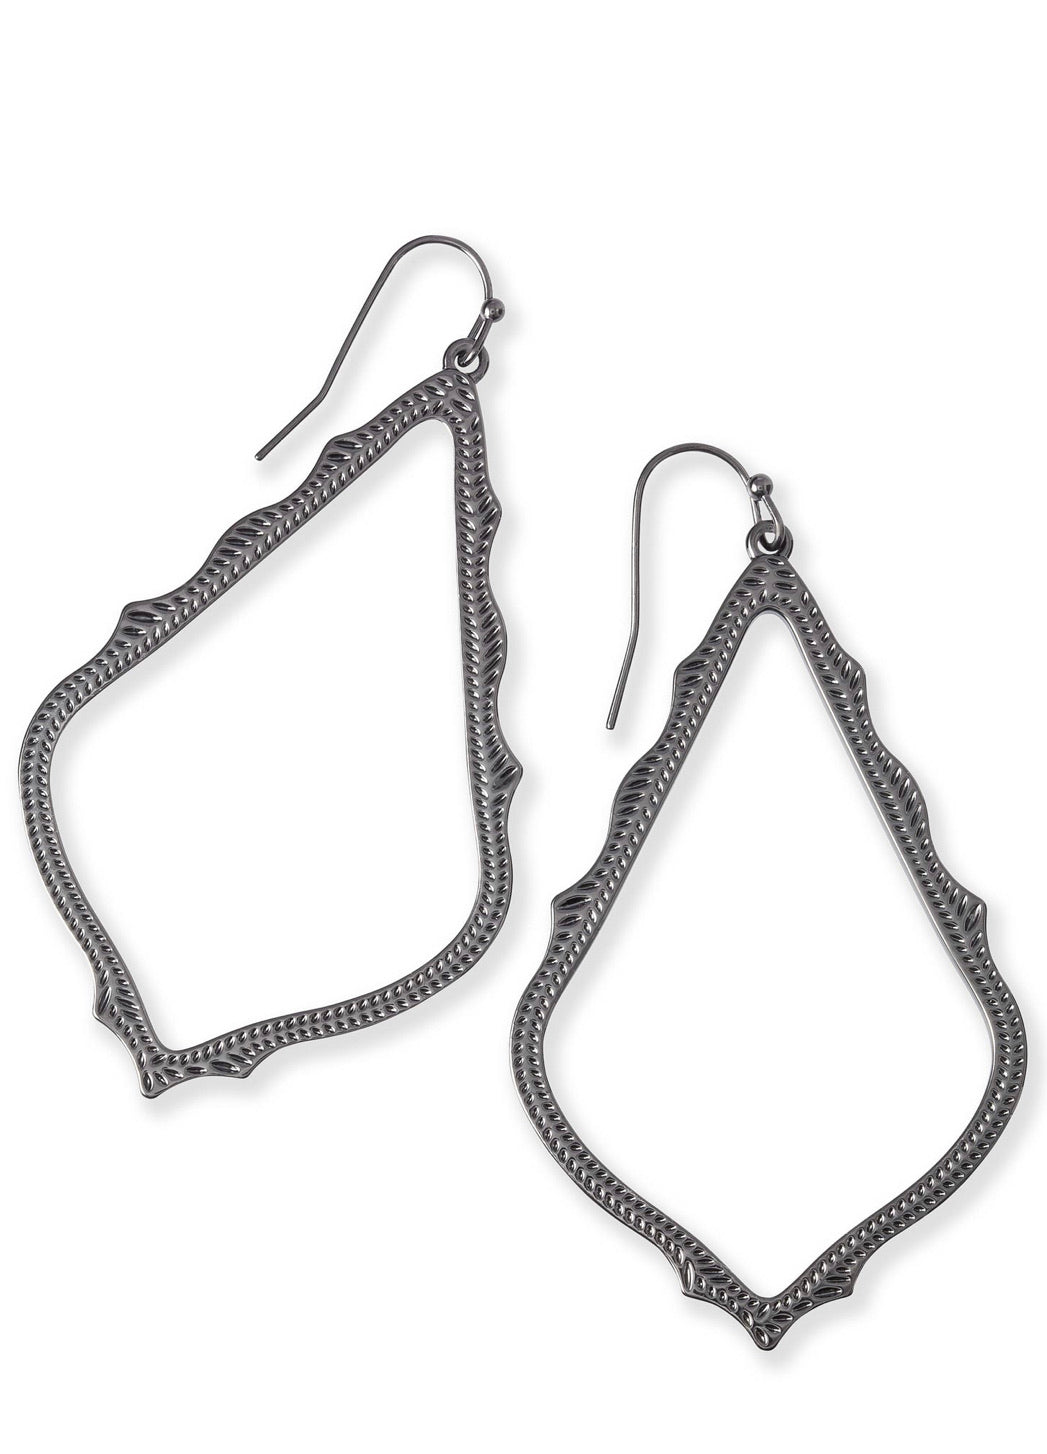 The Sophee drop earring in gunmetal